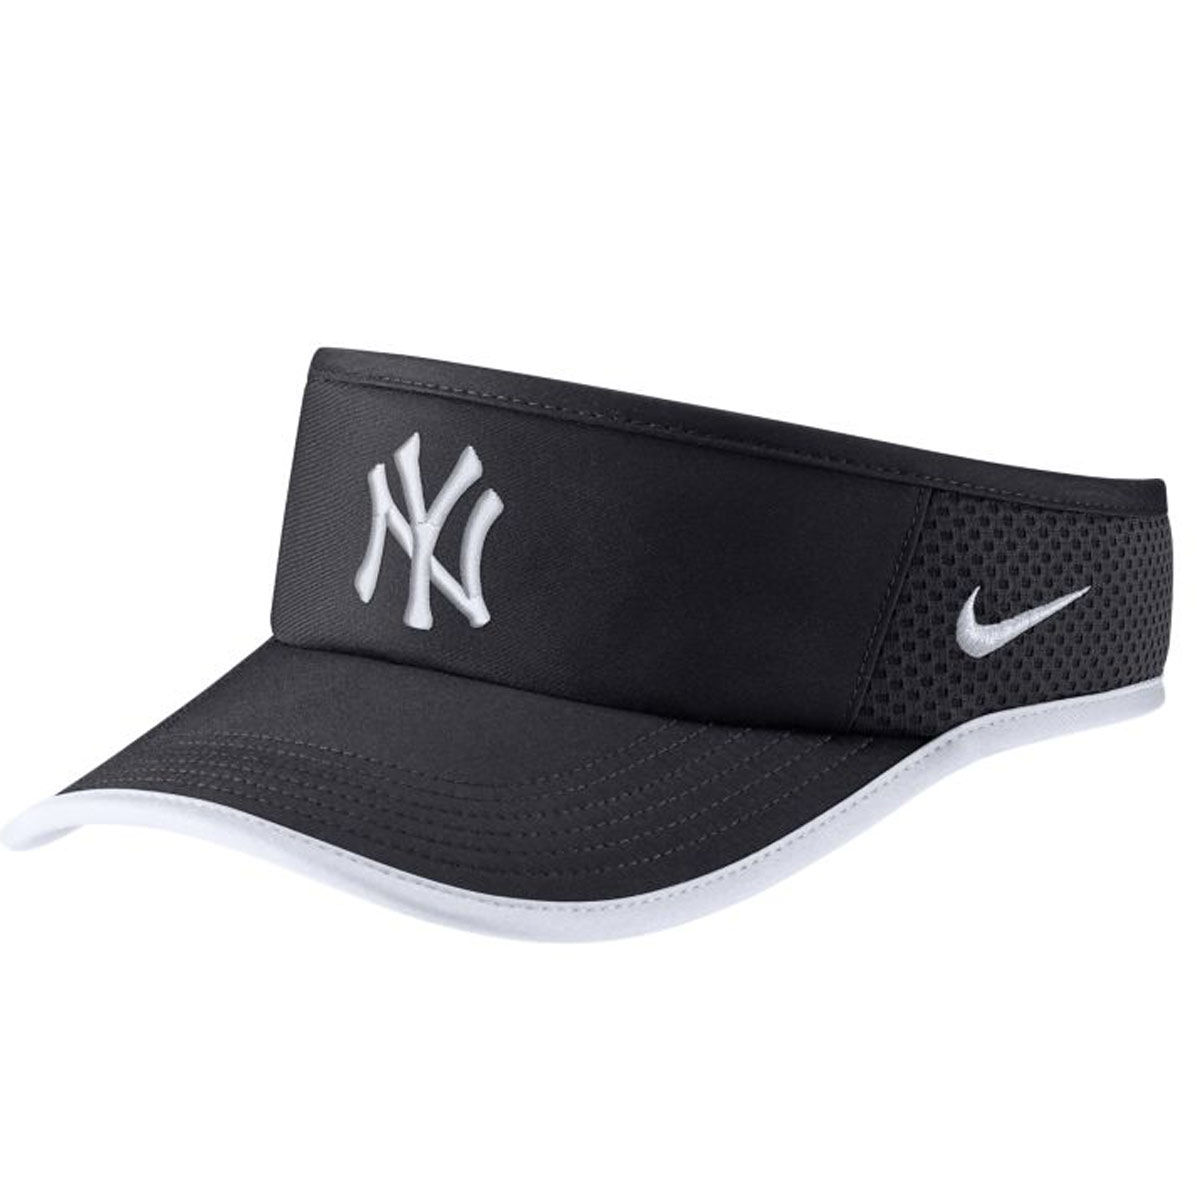 New York Yankees Adult Visor